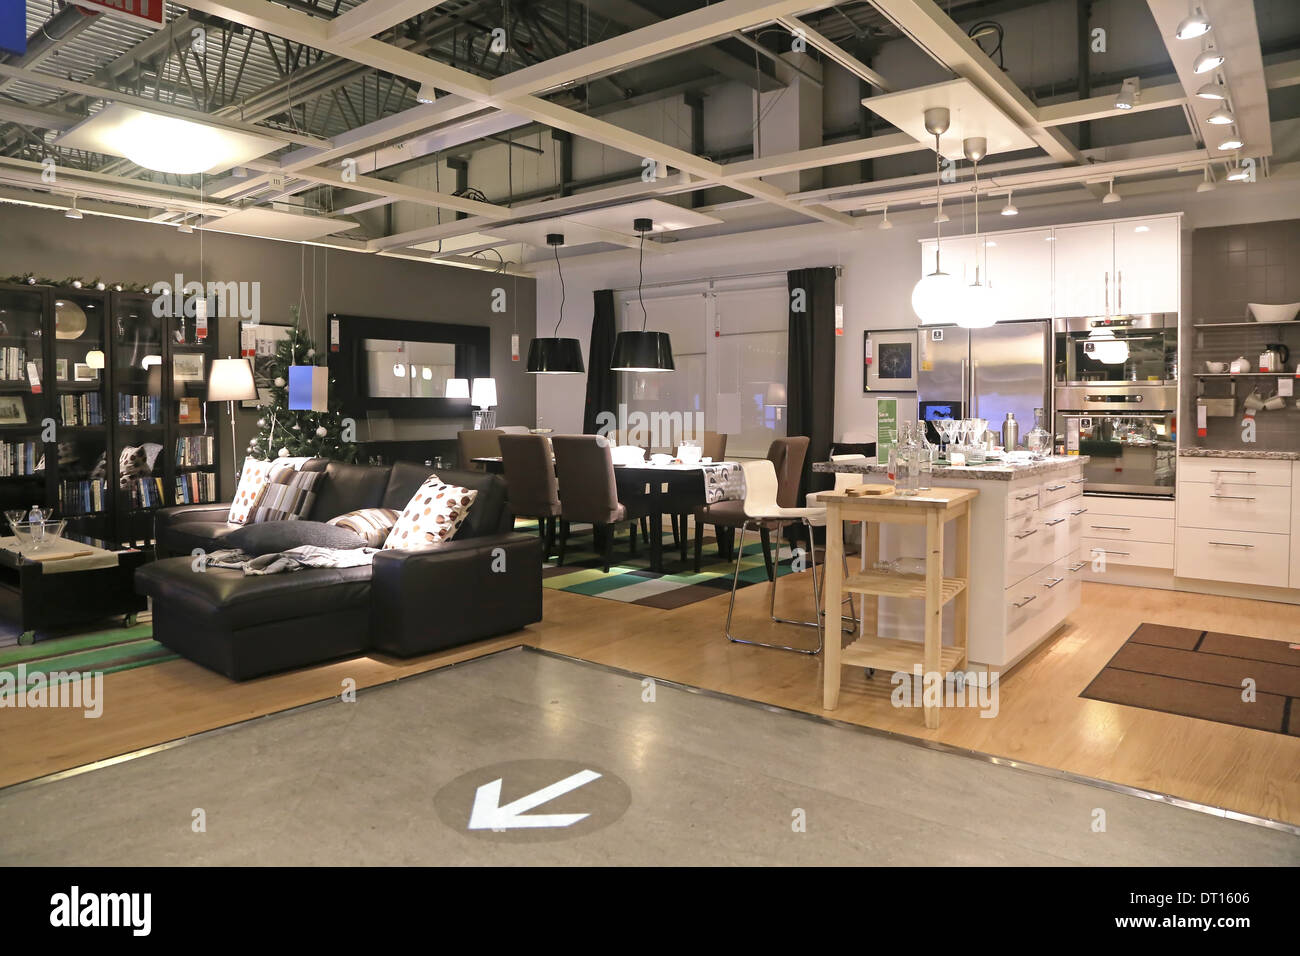 Interieur Ikea Ikea Stock Photos Ikea Stock Images Page 2 Alamy